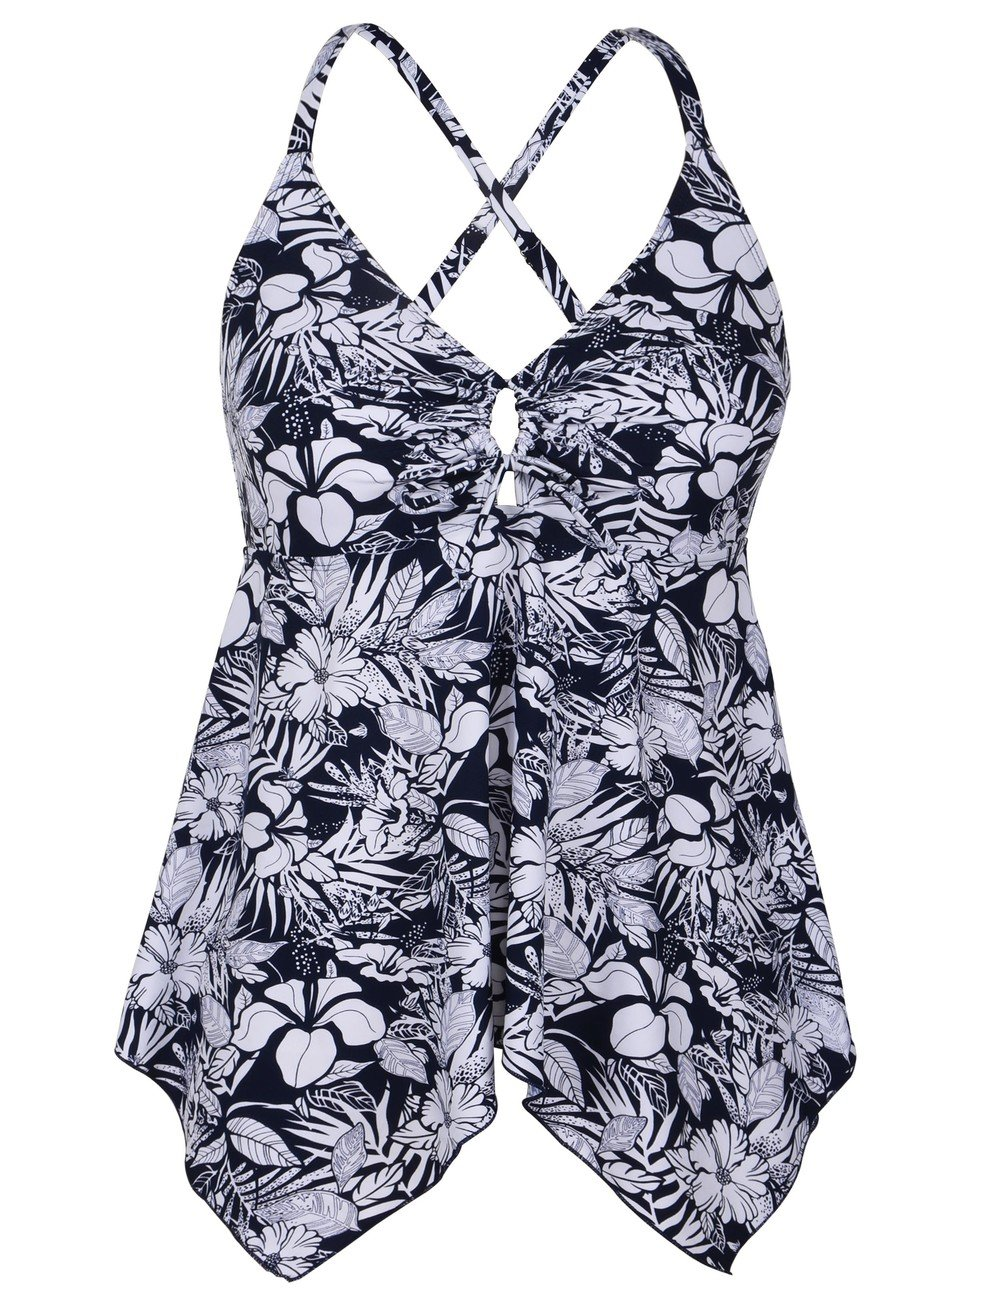 Firpearl Women's Black Floral Flowy Swimsuit Crossback Plus Size Tankini Top US16 White Blue Floral